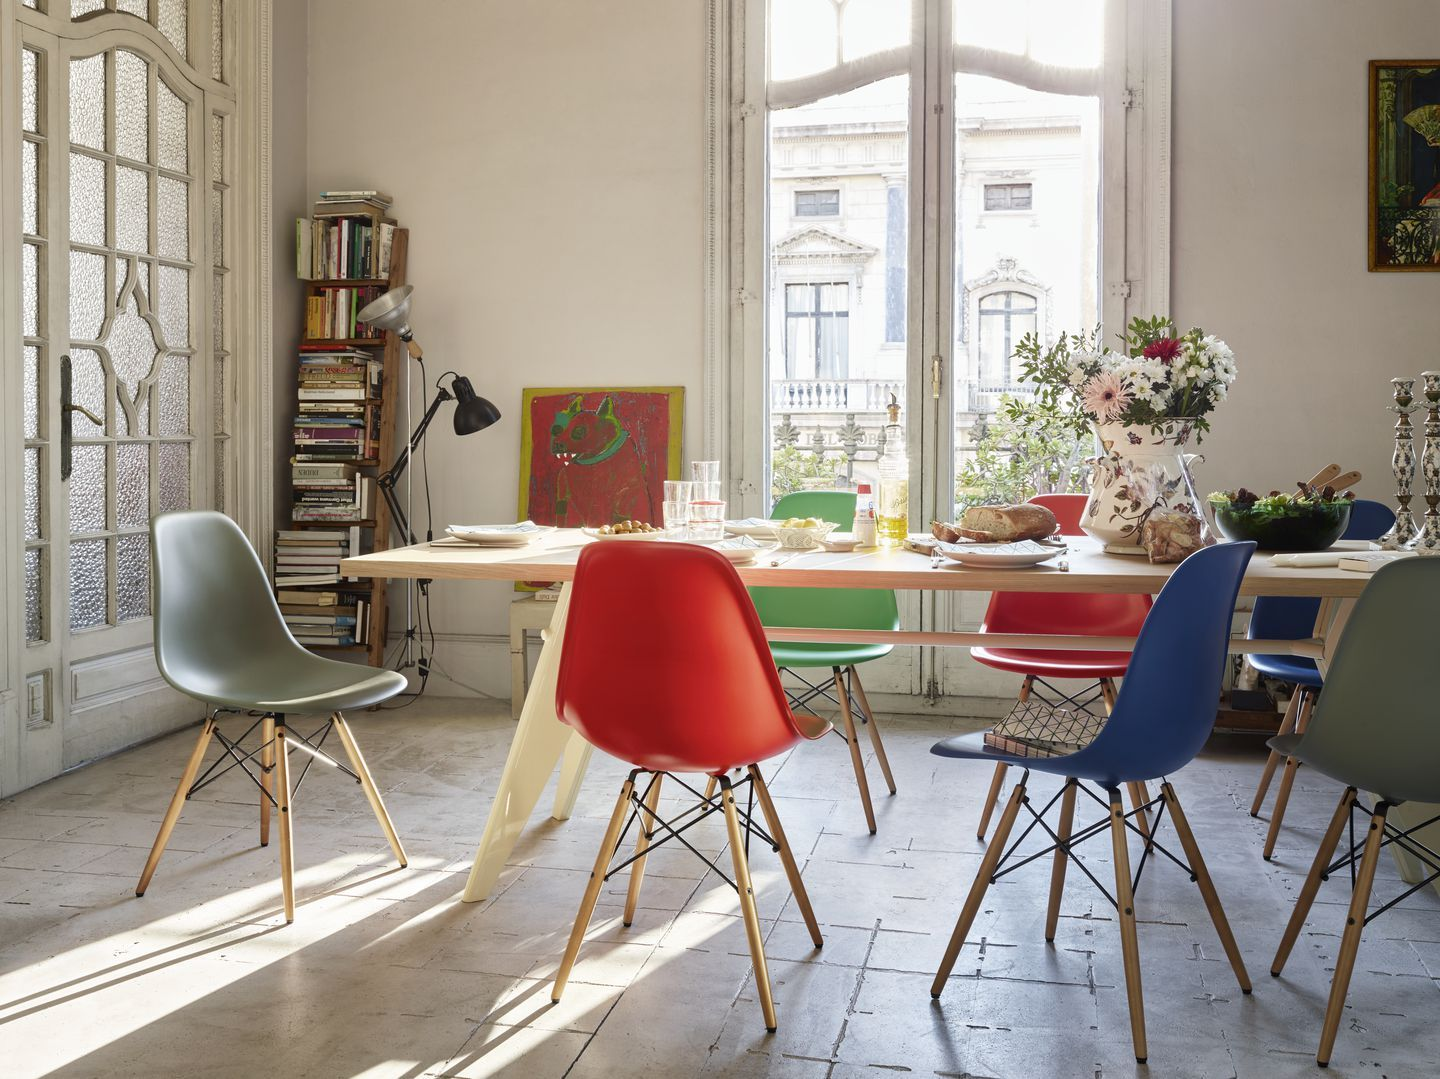 Eames Plastic Side Chair By Vitra Niceideas Nicedesignideas Design Shopdesign Eames Dining Chair Eames Plastic Chair Eames Dining